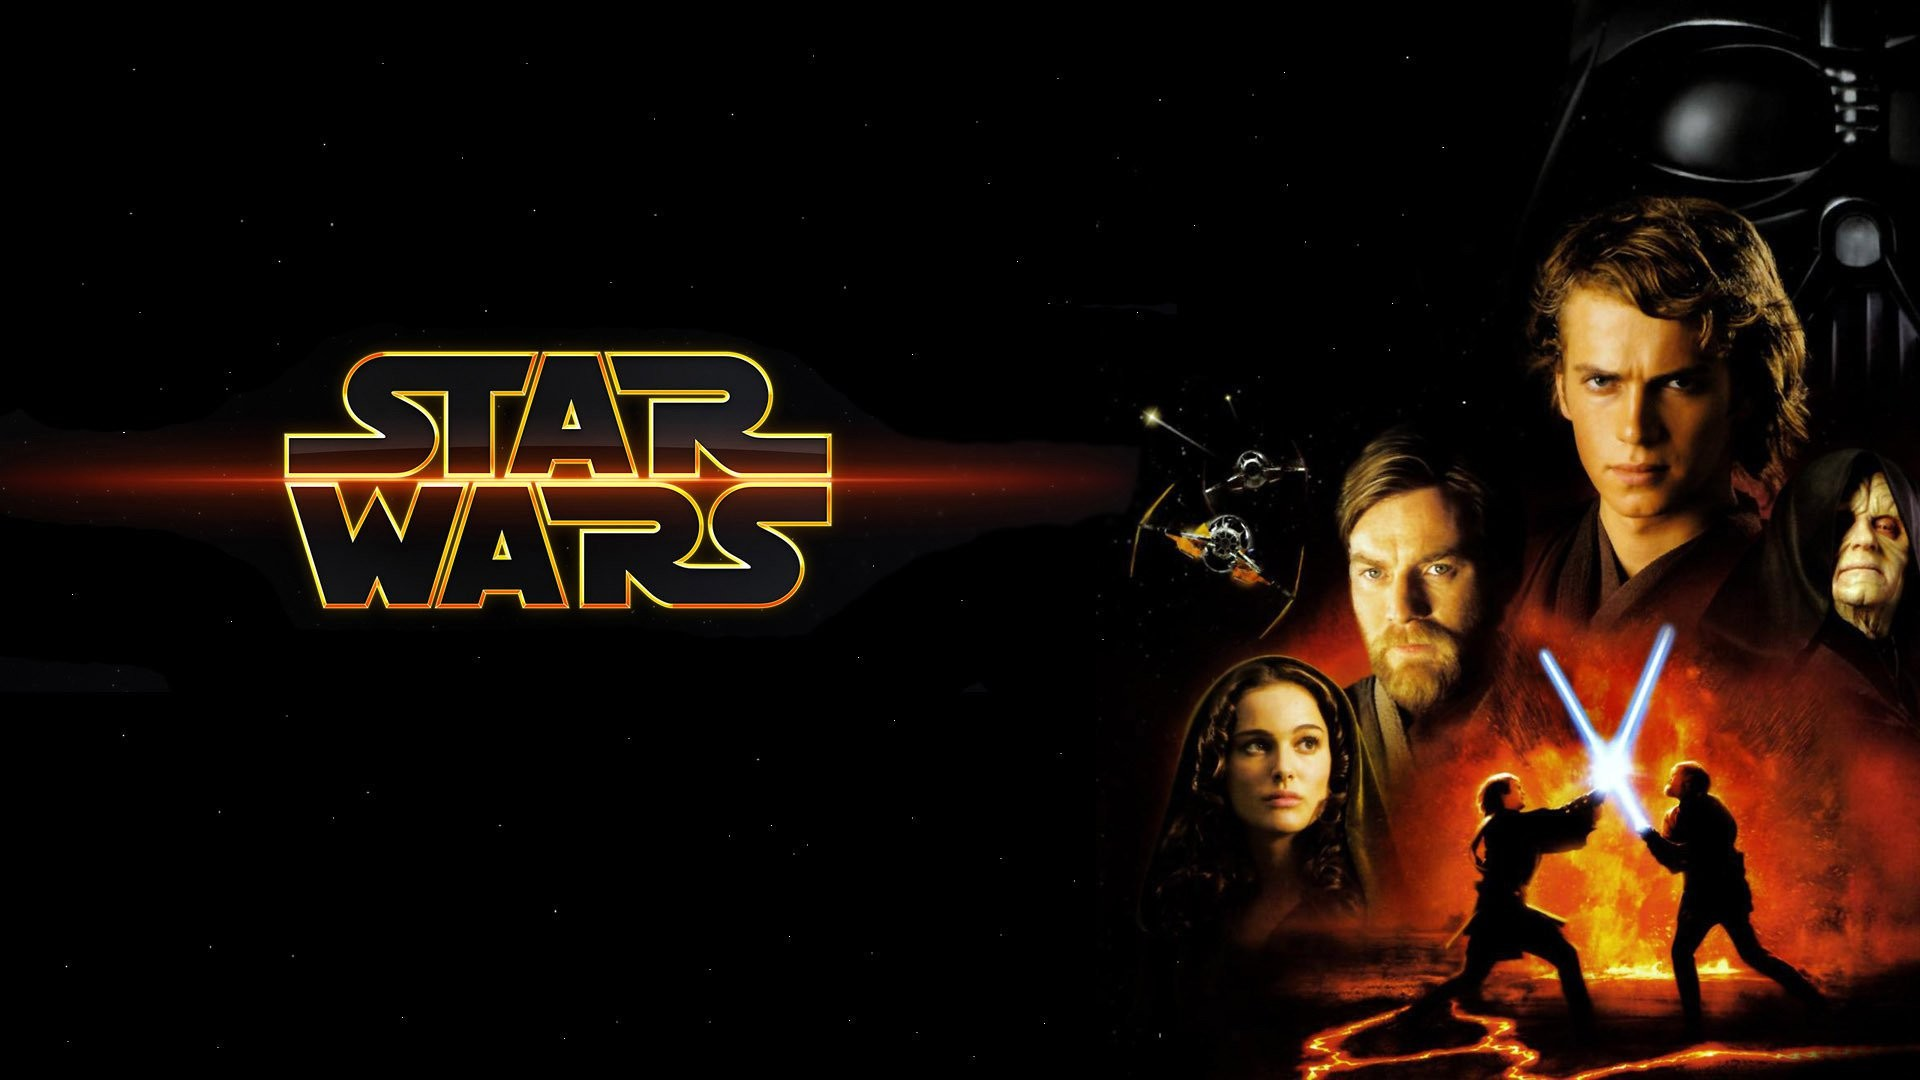 Revenge of the Sith Wallpaper 67+ images